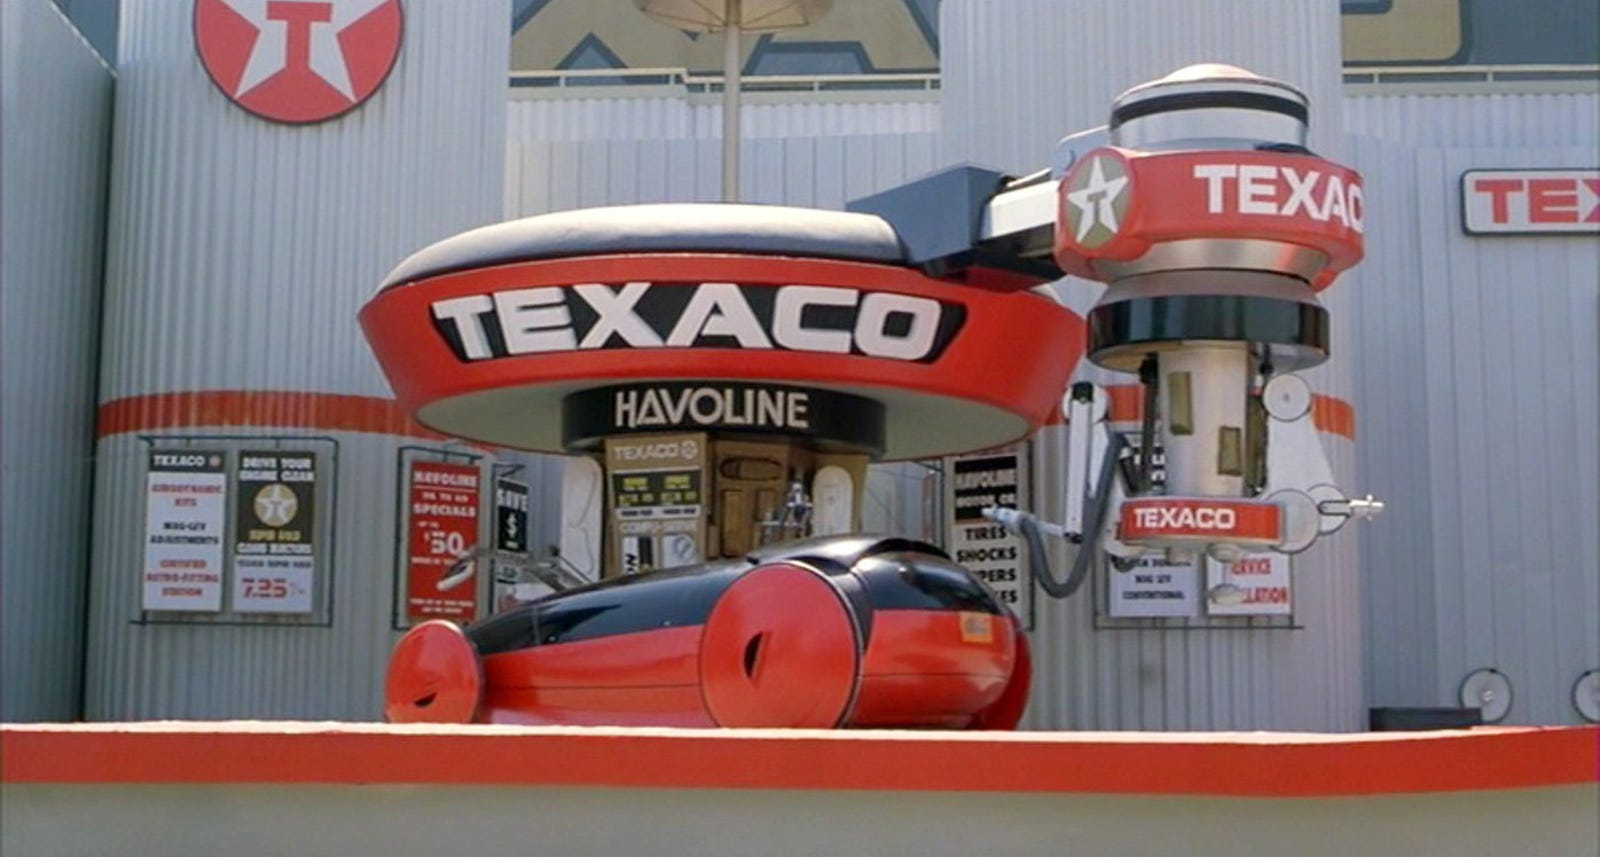 The Texaco station is one of the most memorable sets in the movie.